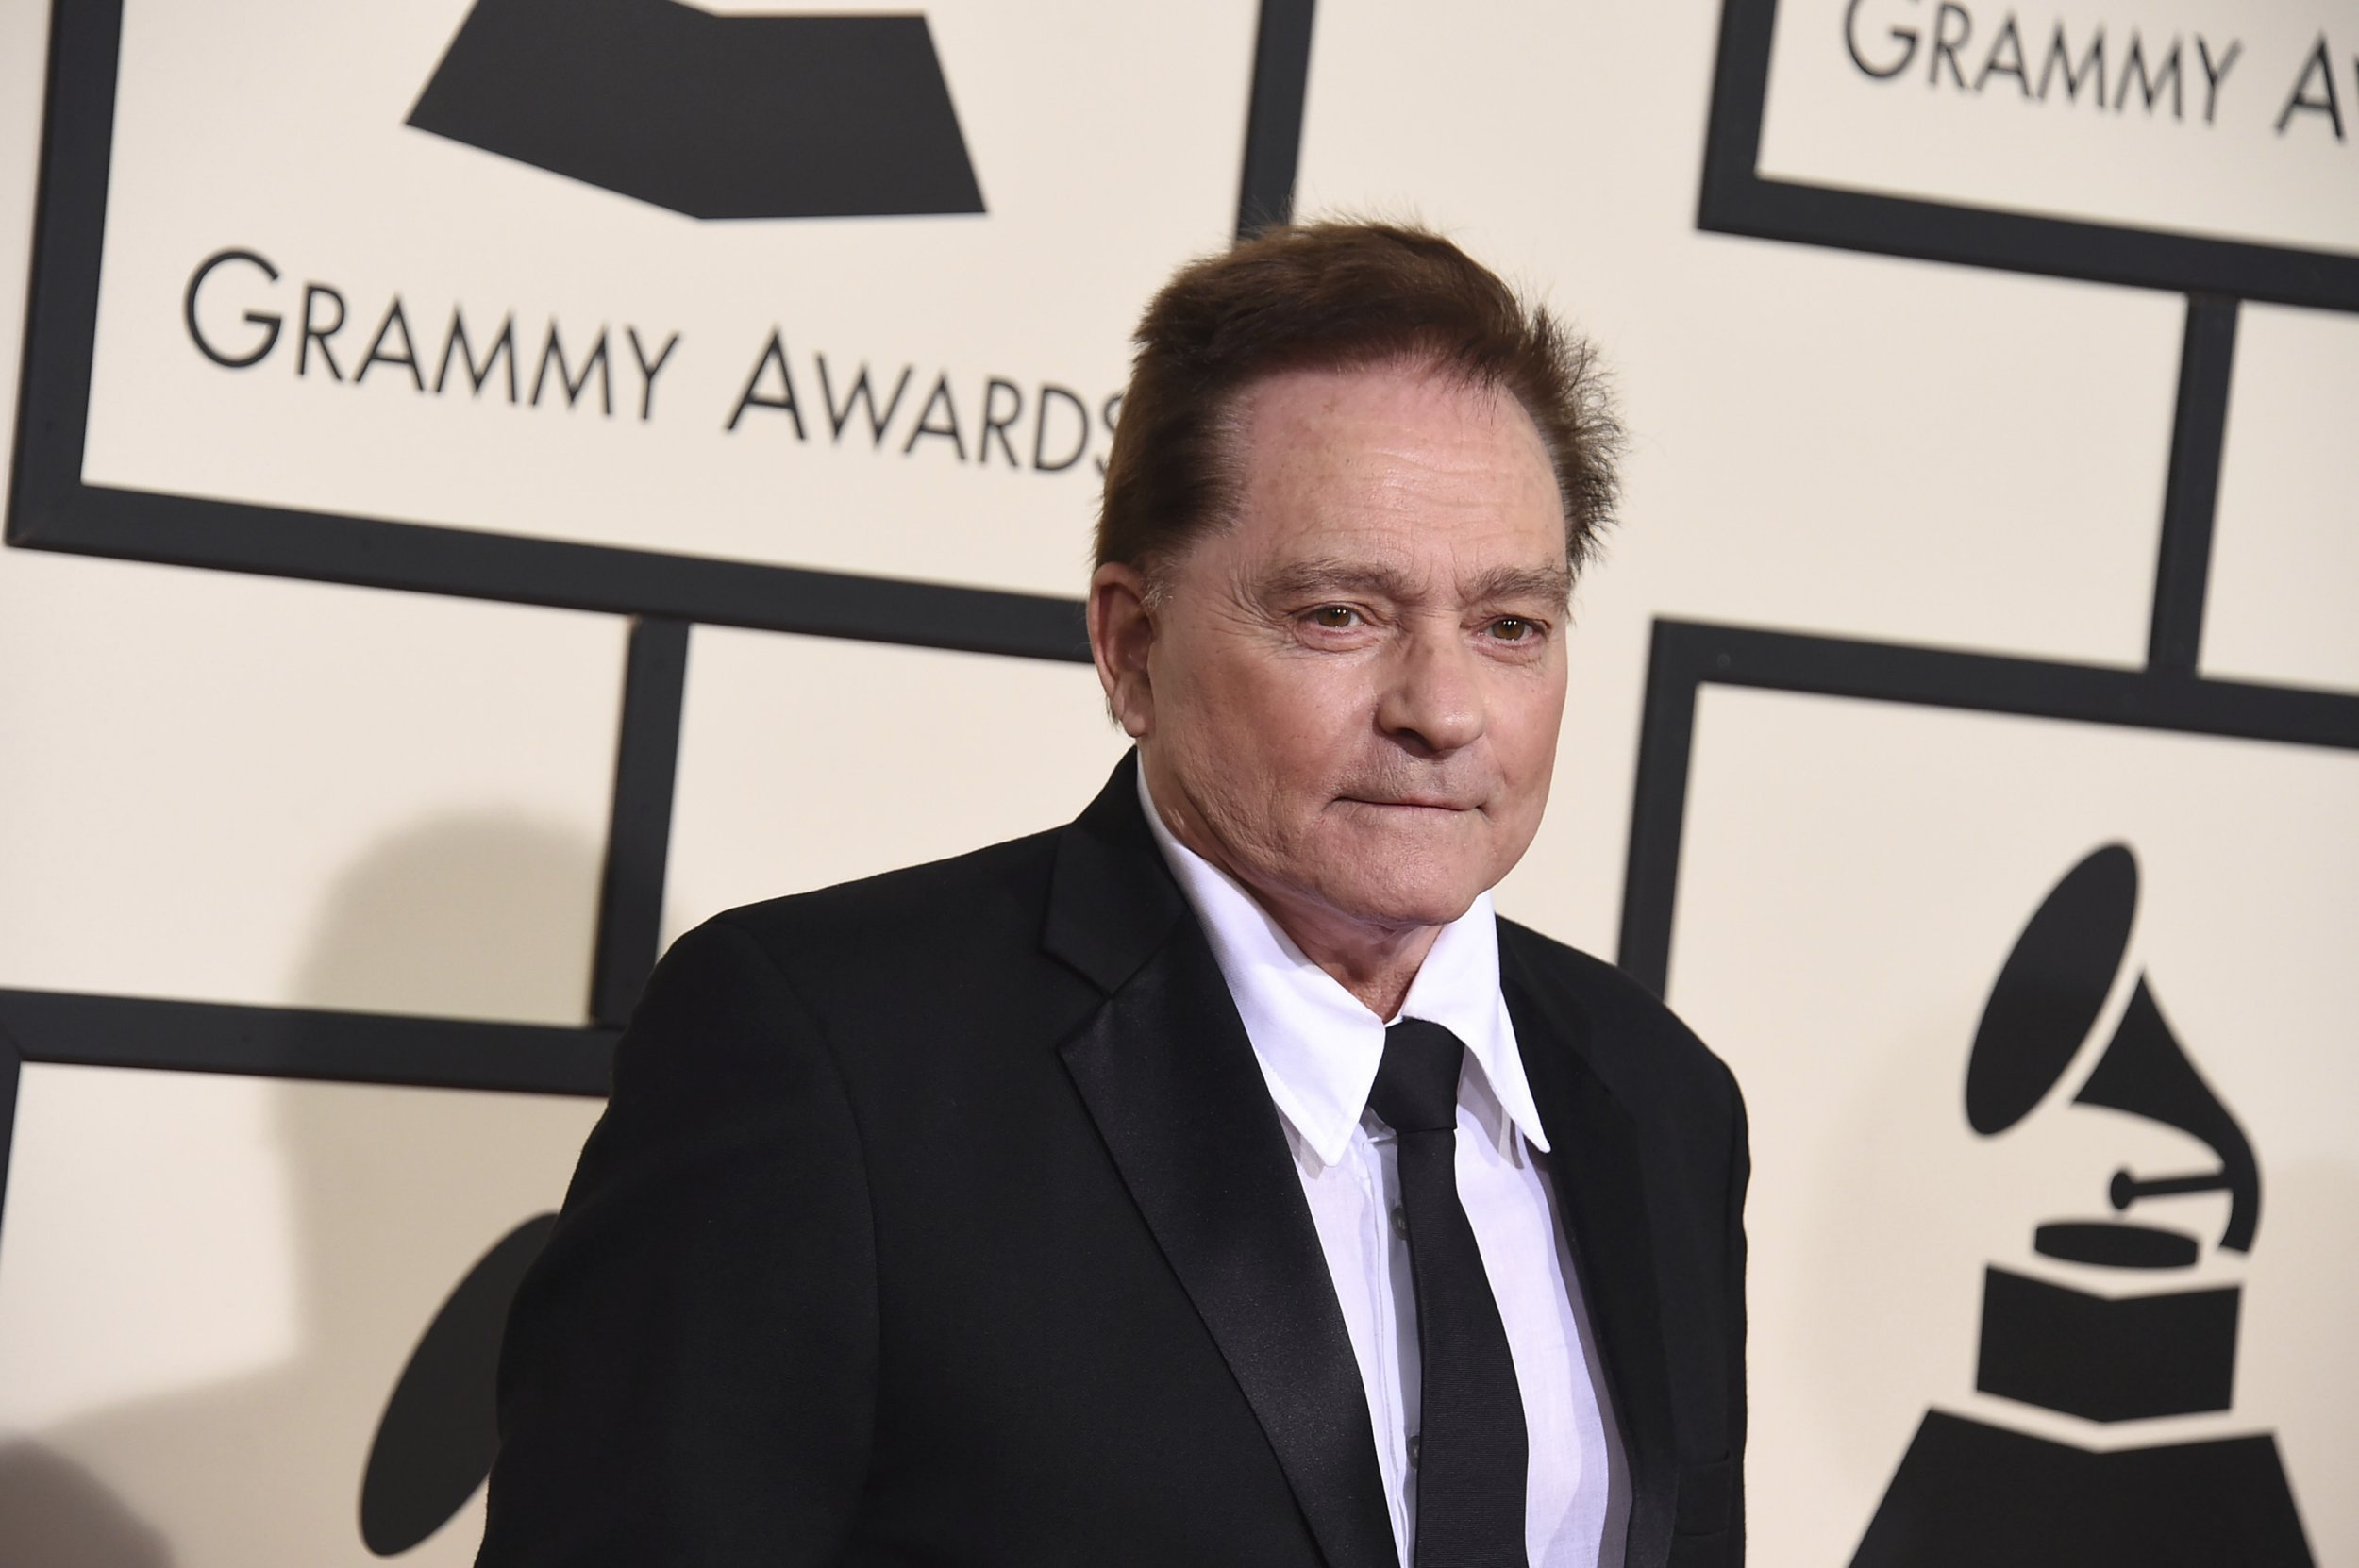 Marty Balin, co-founder of Jefferson Airplane, dies aged 76